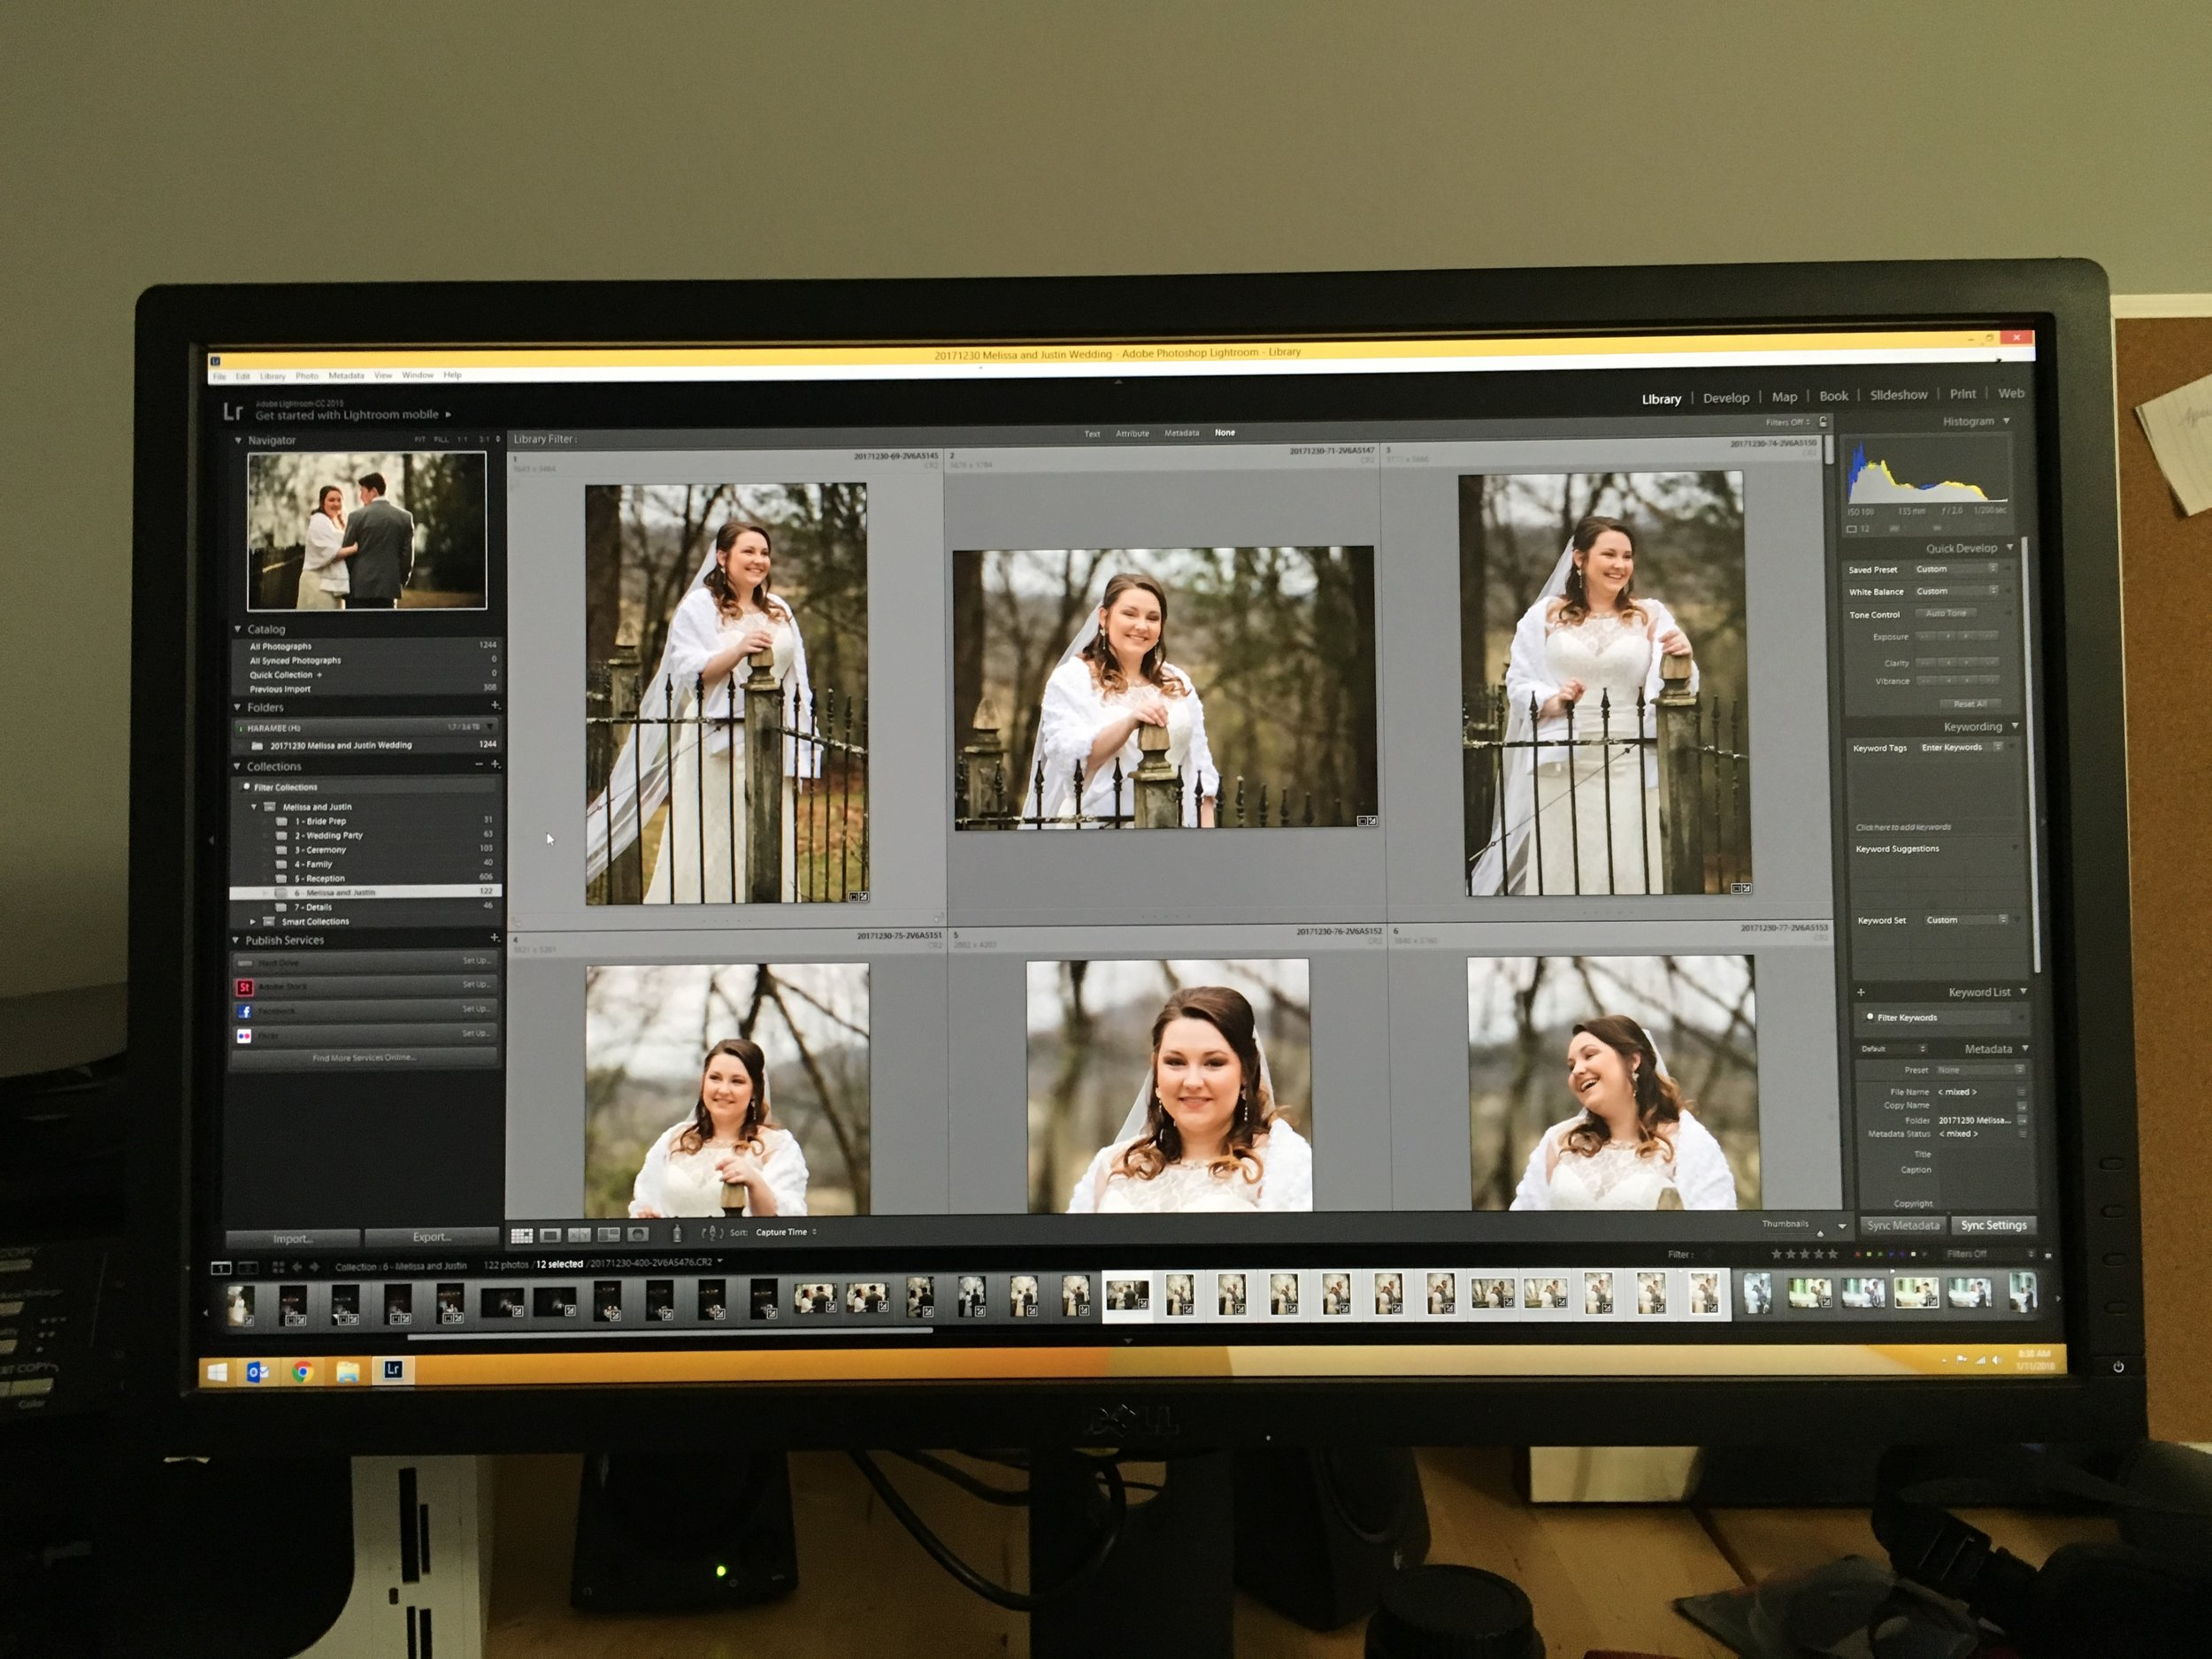 My desk today. And no, this bride is not represented by this post - Melissa was perfect and gracious and lovely.